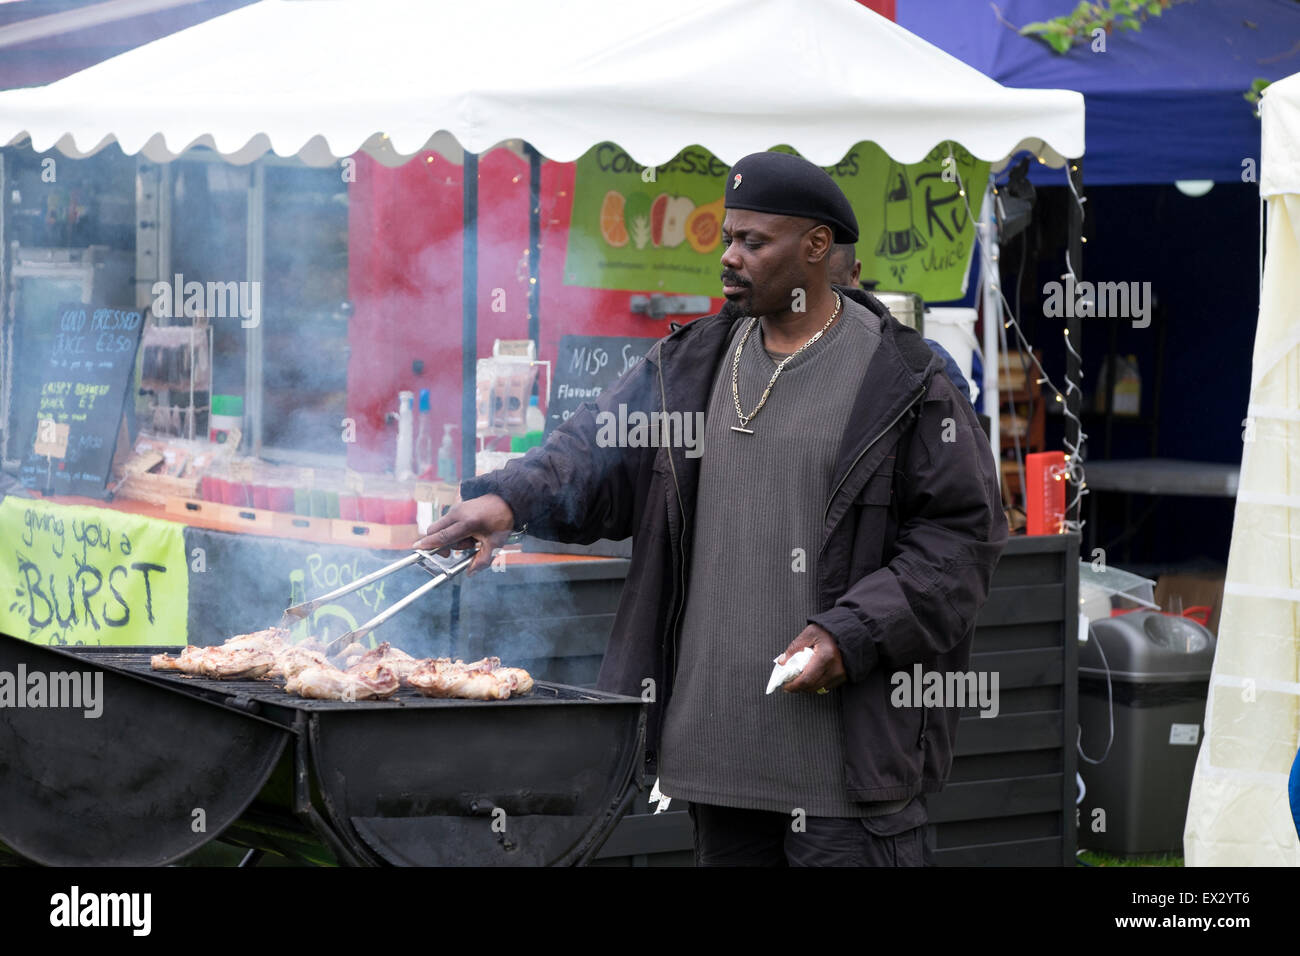 Afro Caribbean African Man Cooking BBQ Chicken - Stock Image